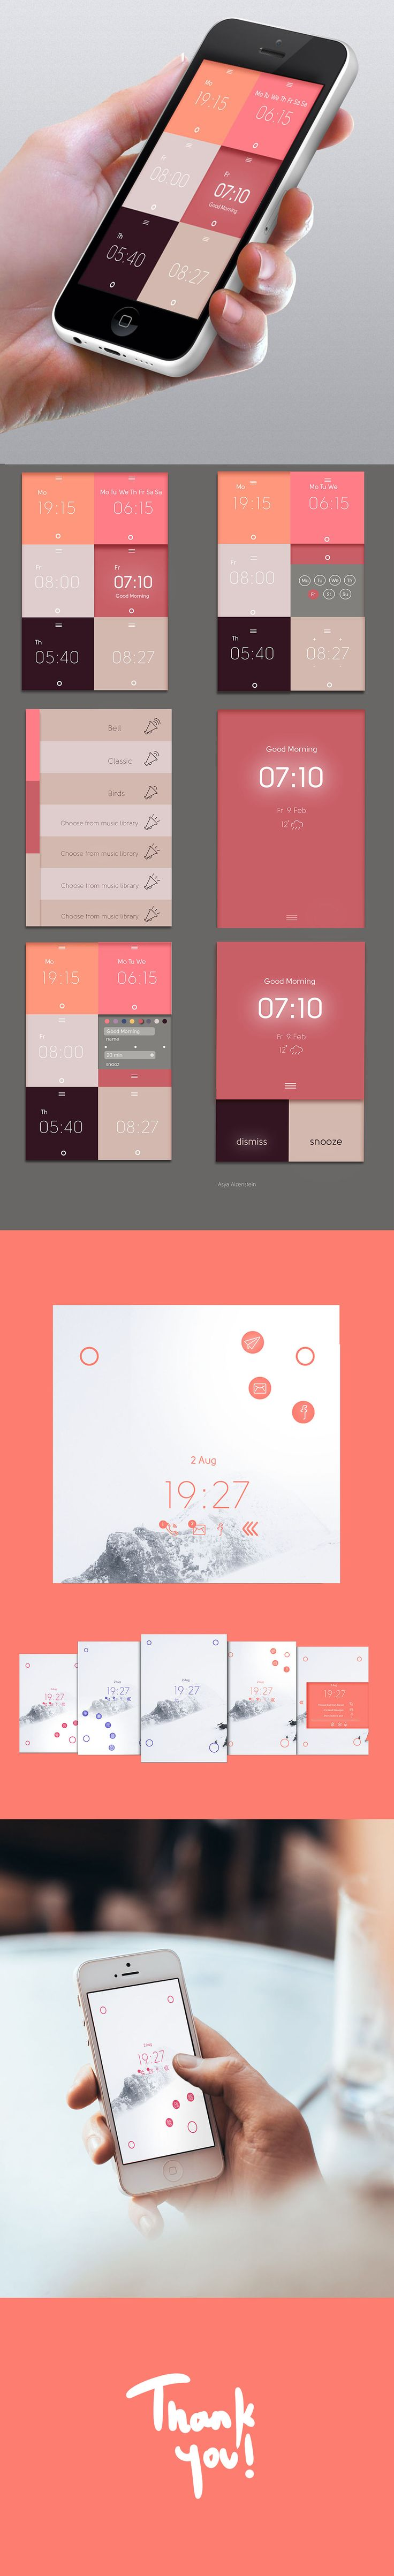 Weekly alarm clock app on Behance